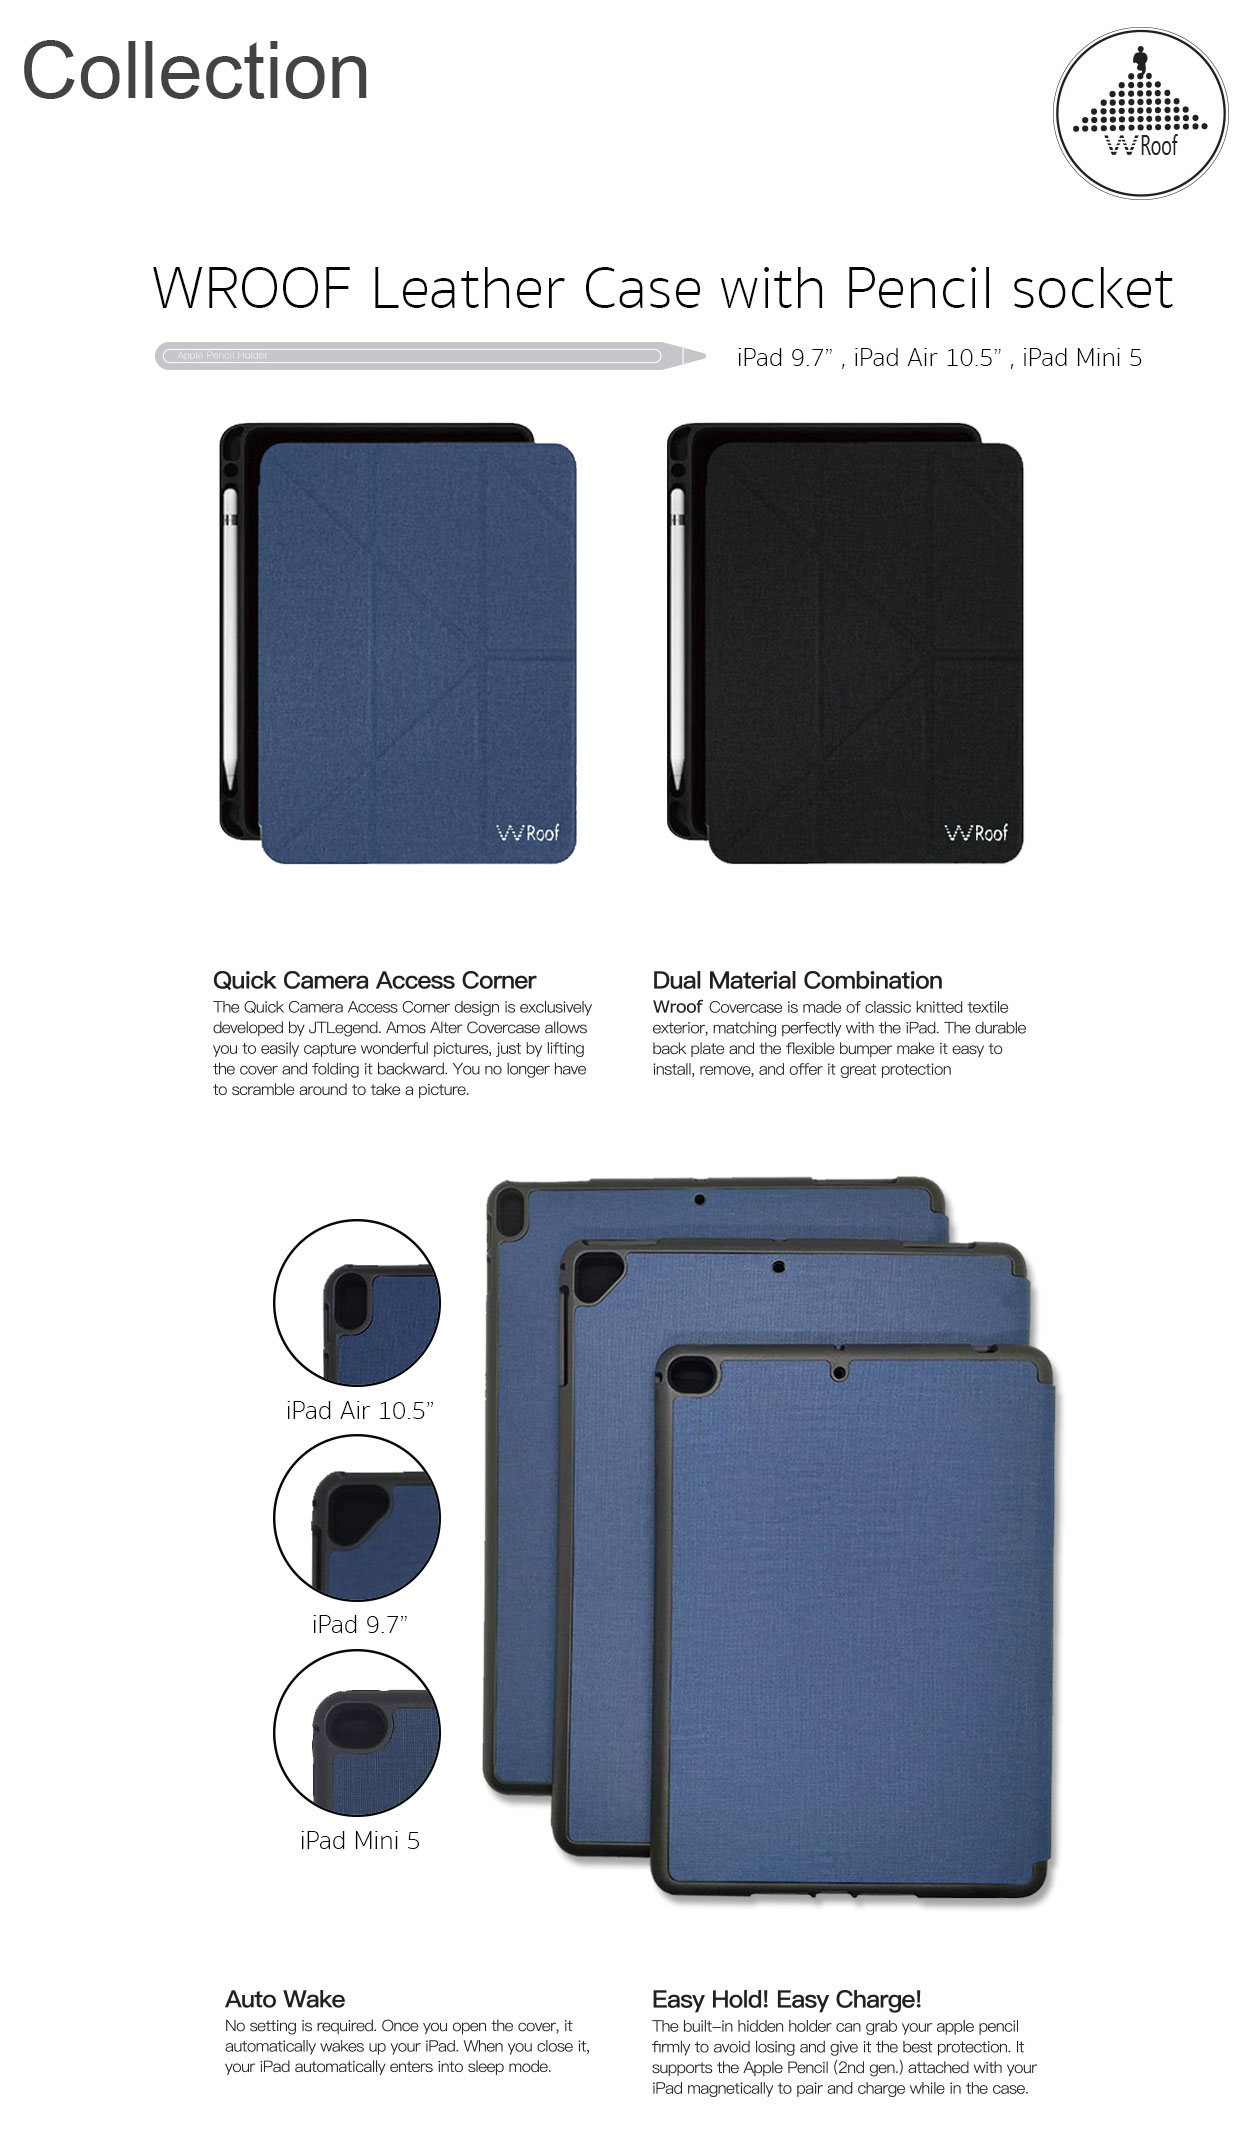 Wroof Leather Case with Pencil Socket for iPad 10.5 inch Navy